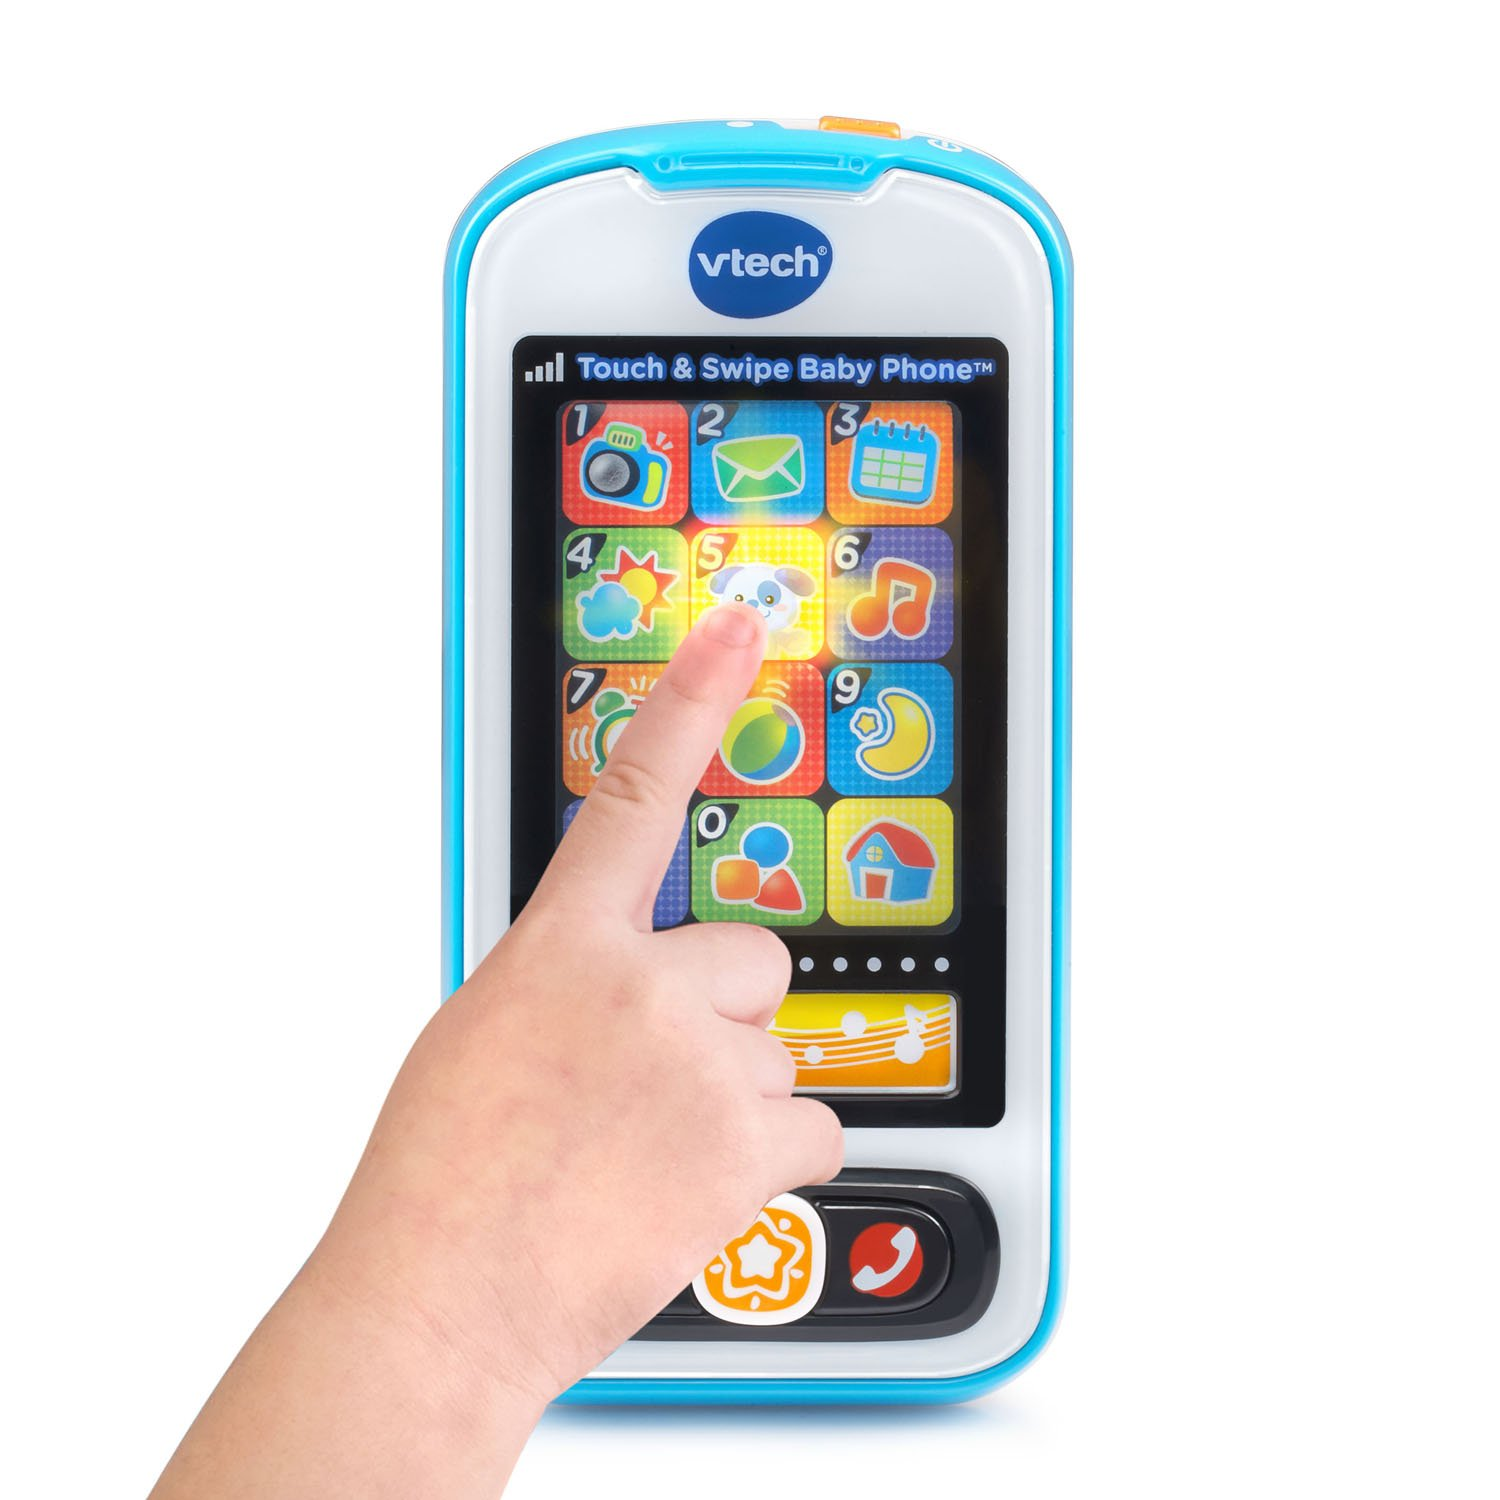 VTech Touch and Swipe Baby Phone, Blue by VTech (Image #2)